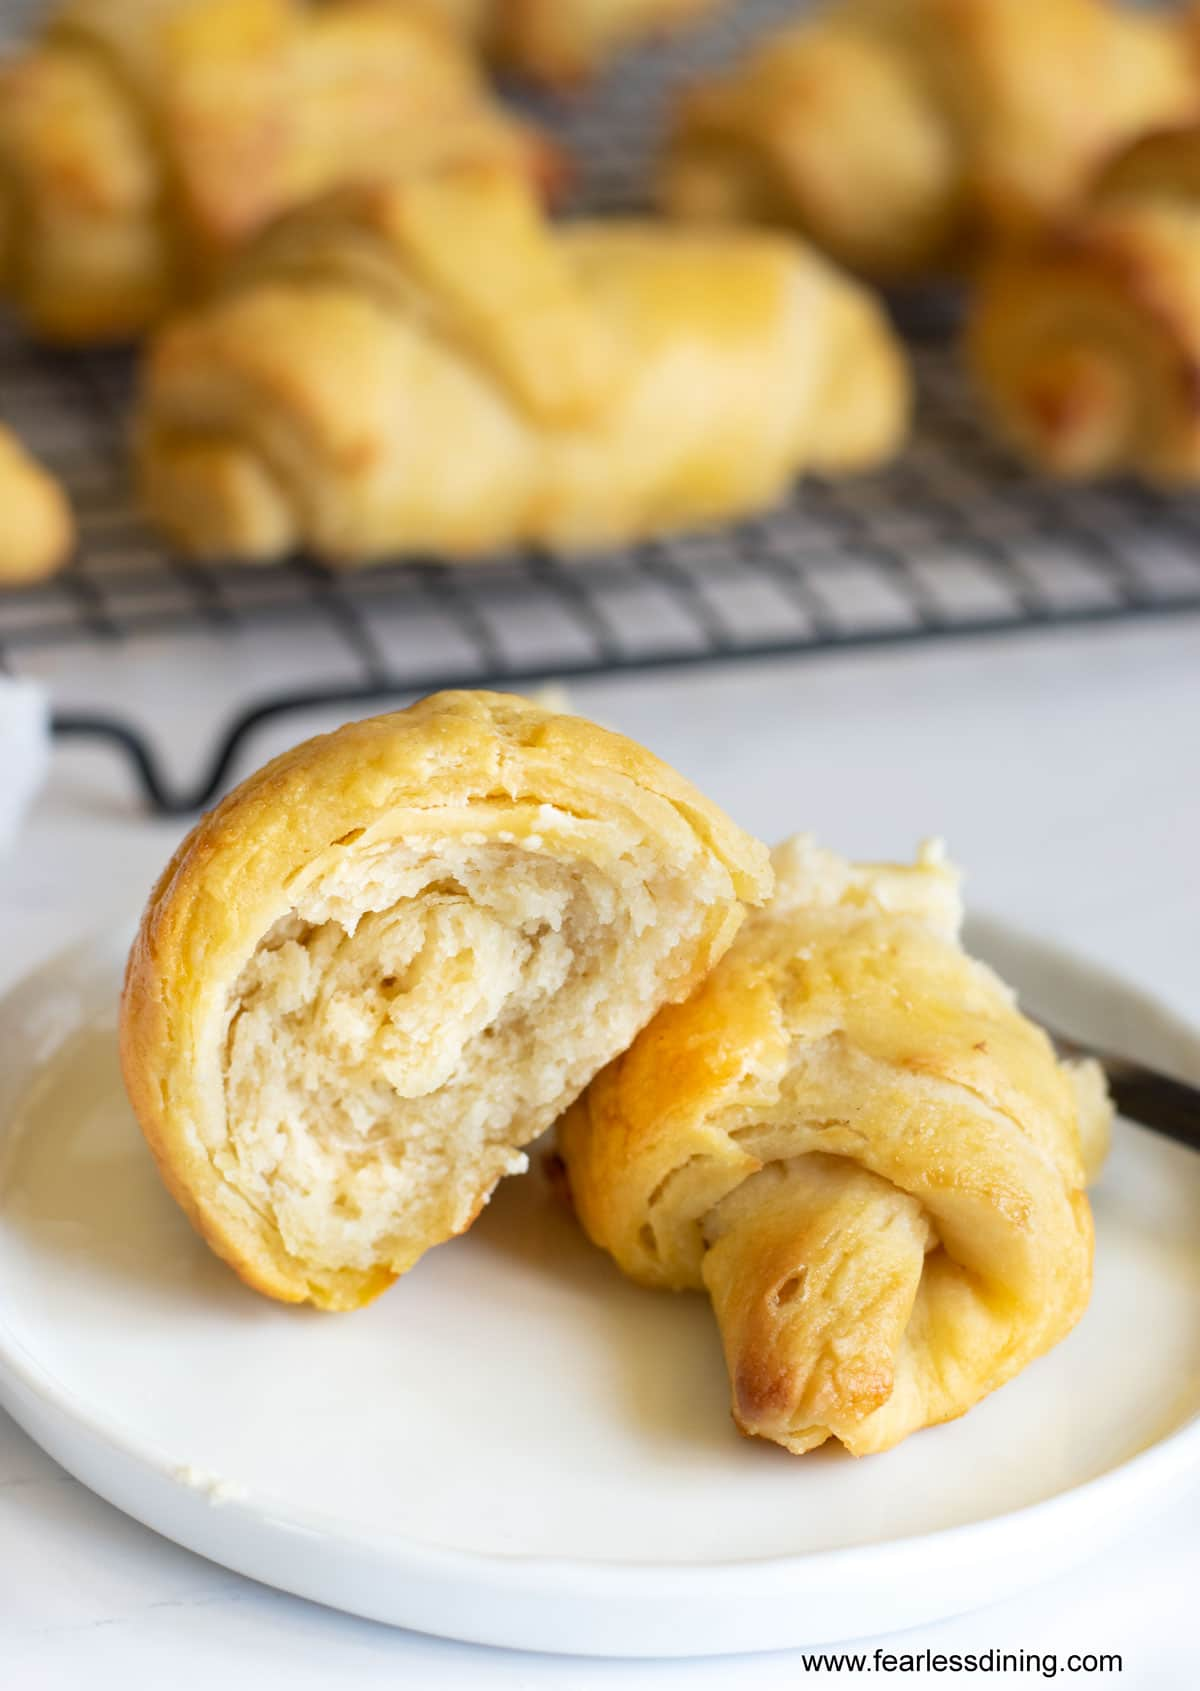 two halves of a crescent roll on a white plate